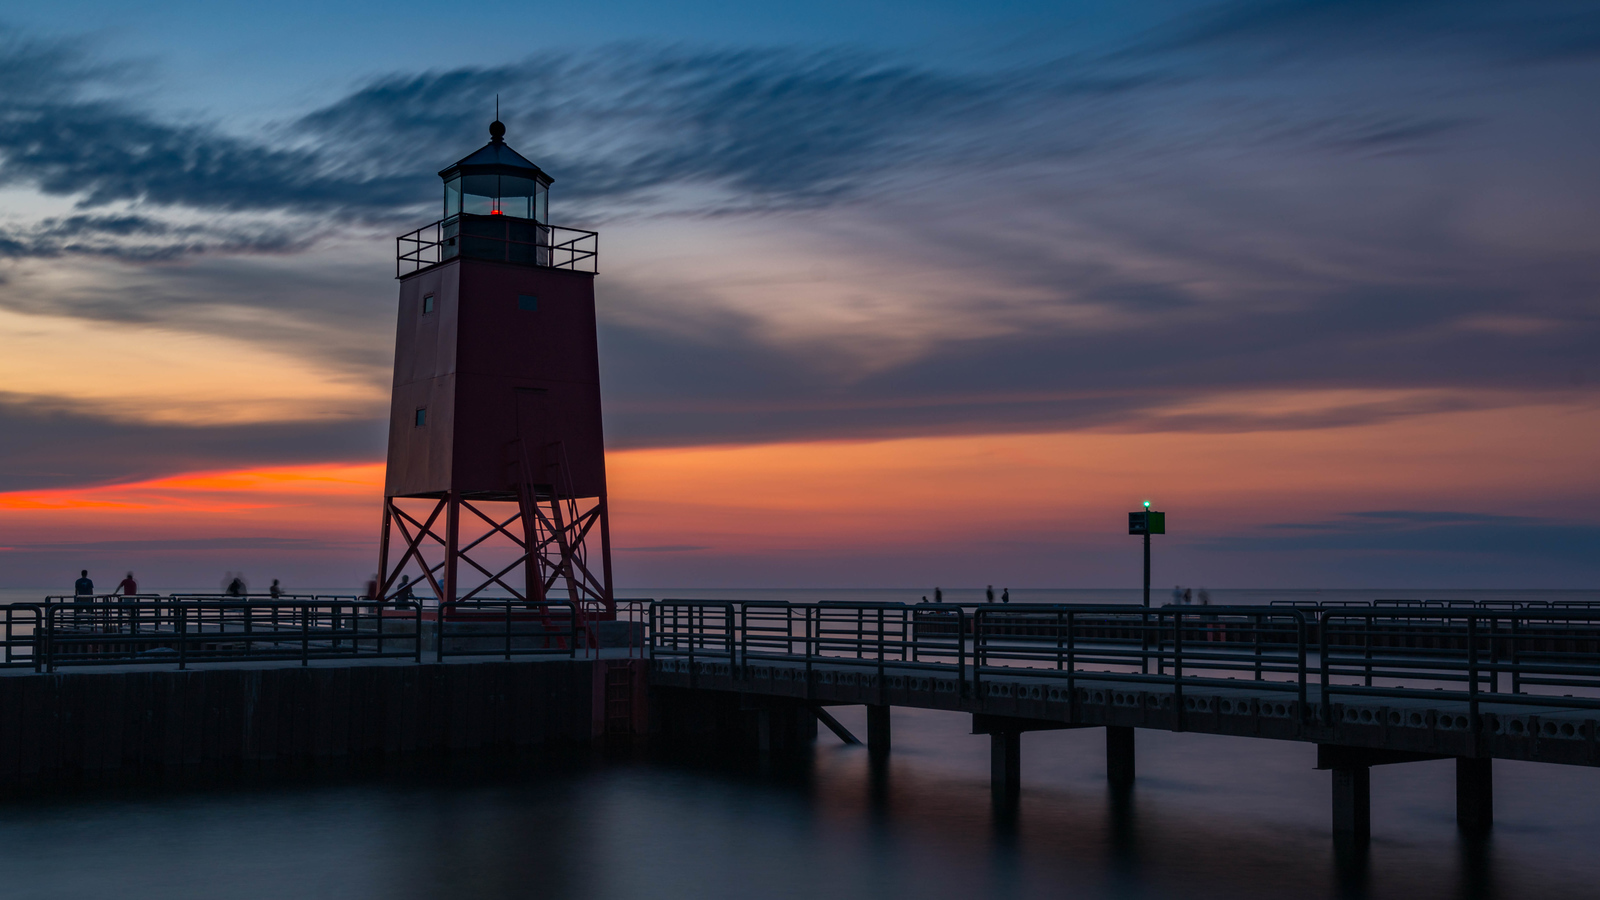 Sunset at the Charlevoix Lighthouse in Michigan